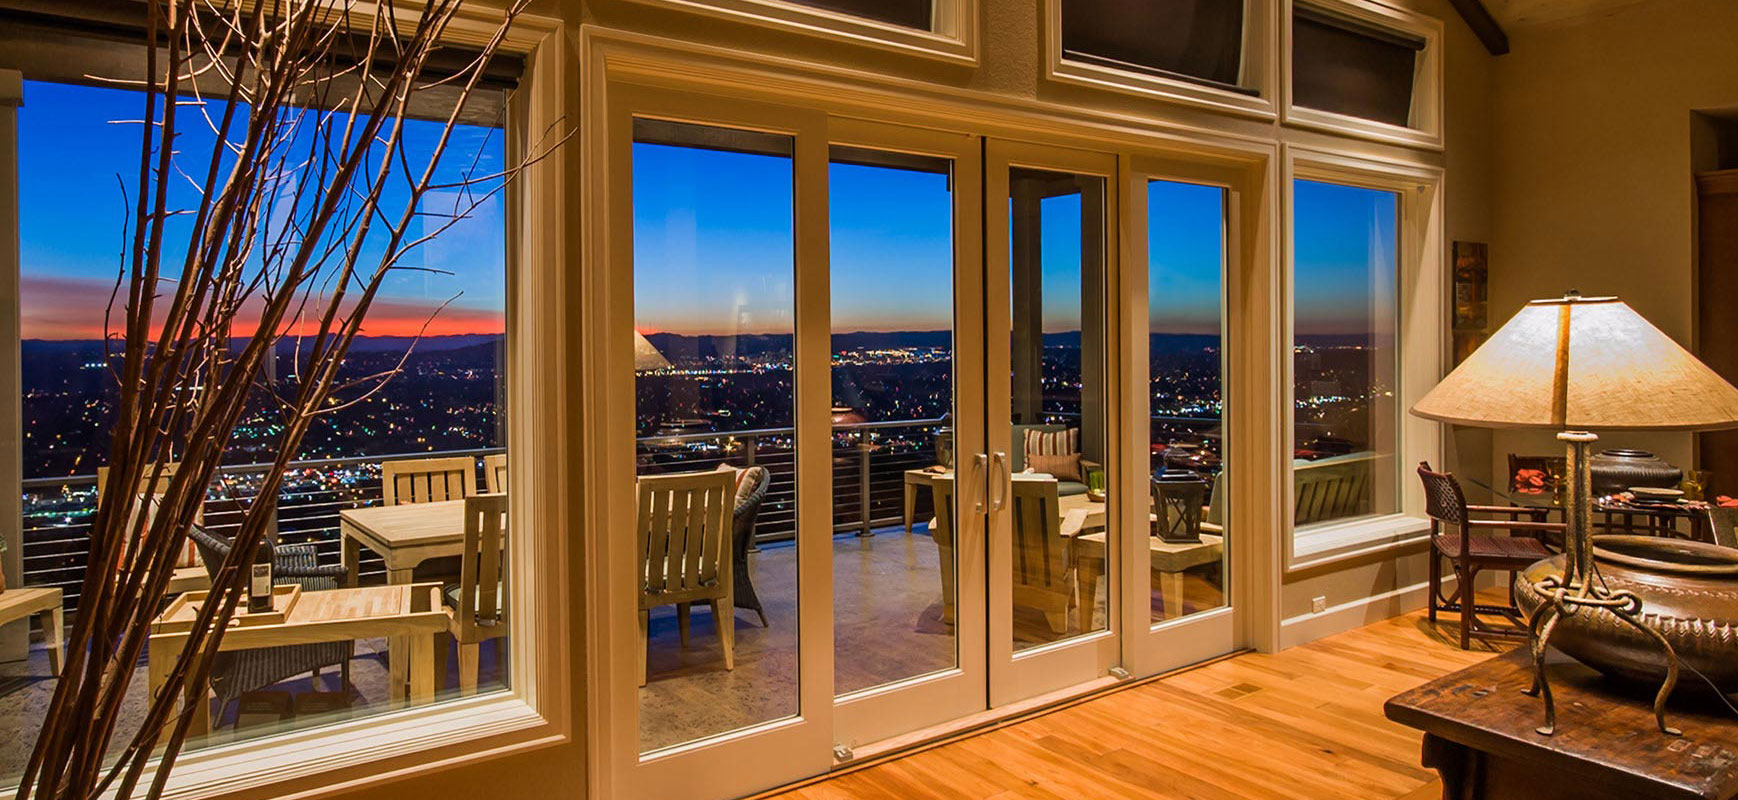 Dreaming of a new view? Our agents can help you find your perfect new home.